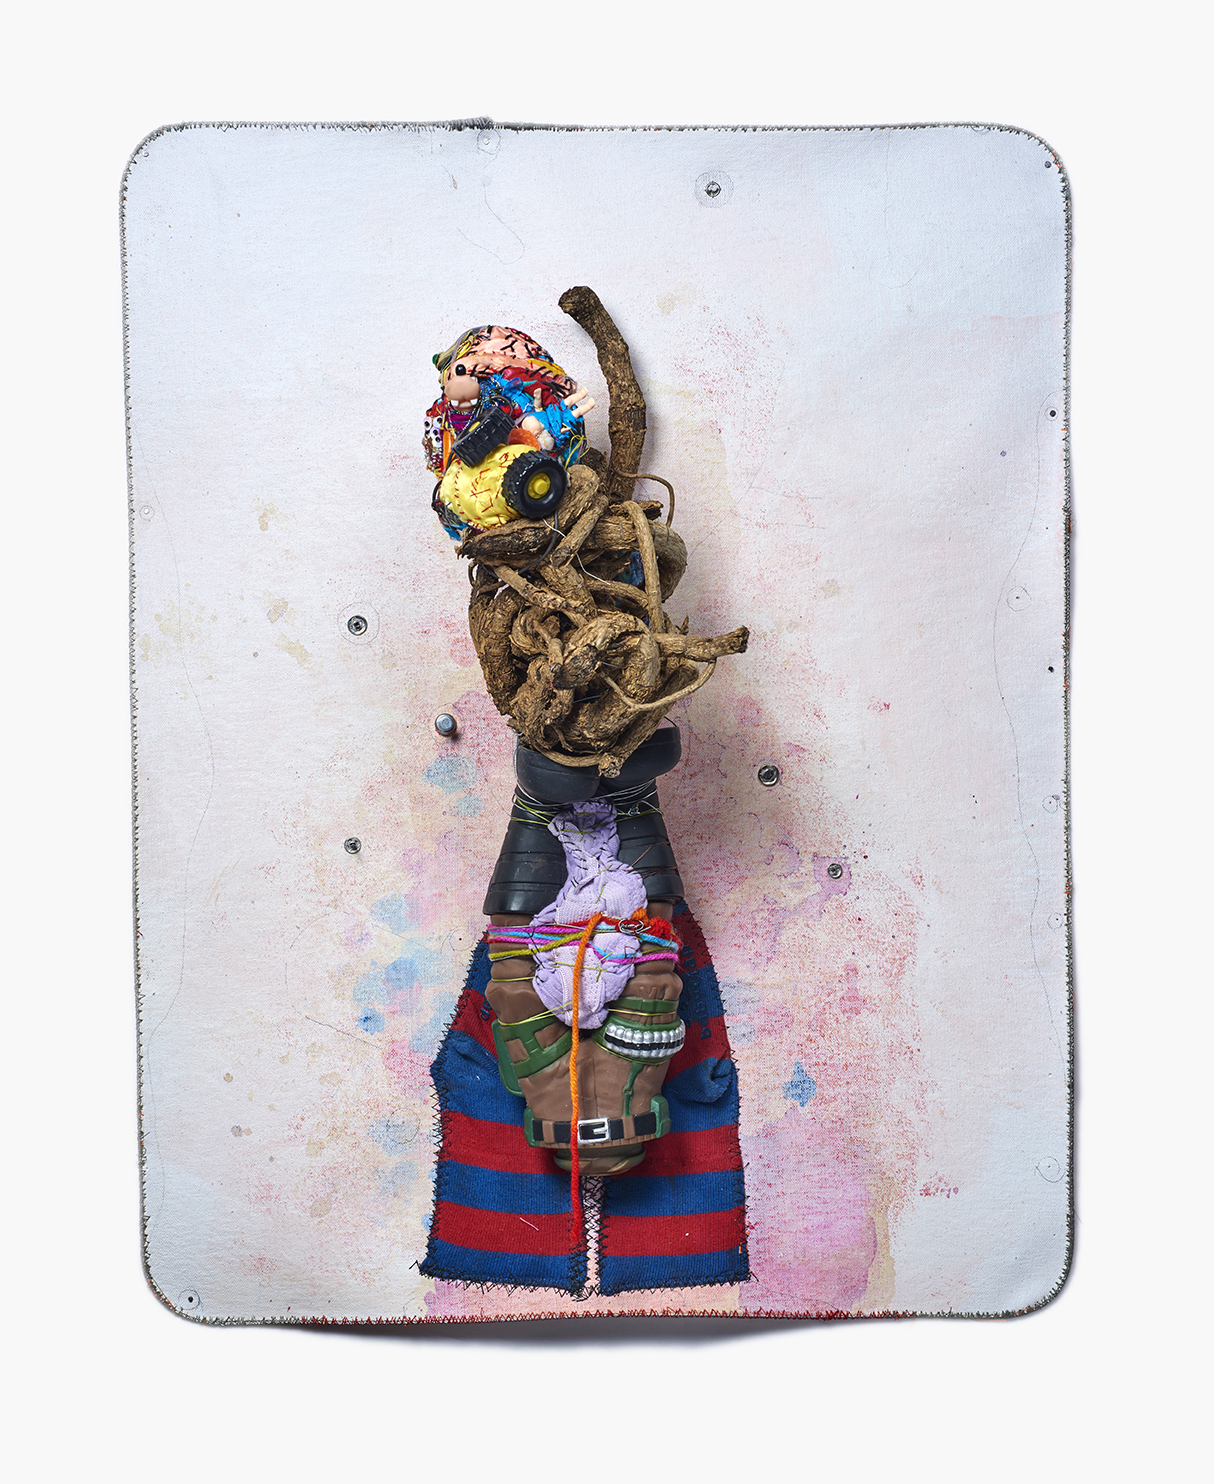 """Nature, Fashion & War , 2016 22 ½"""" x 17 ½"""" x 8"""", canvas, cable, pencil, gouache, thread, acrylic, found objects, metal cable"""